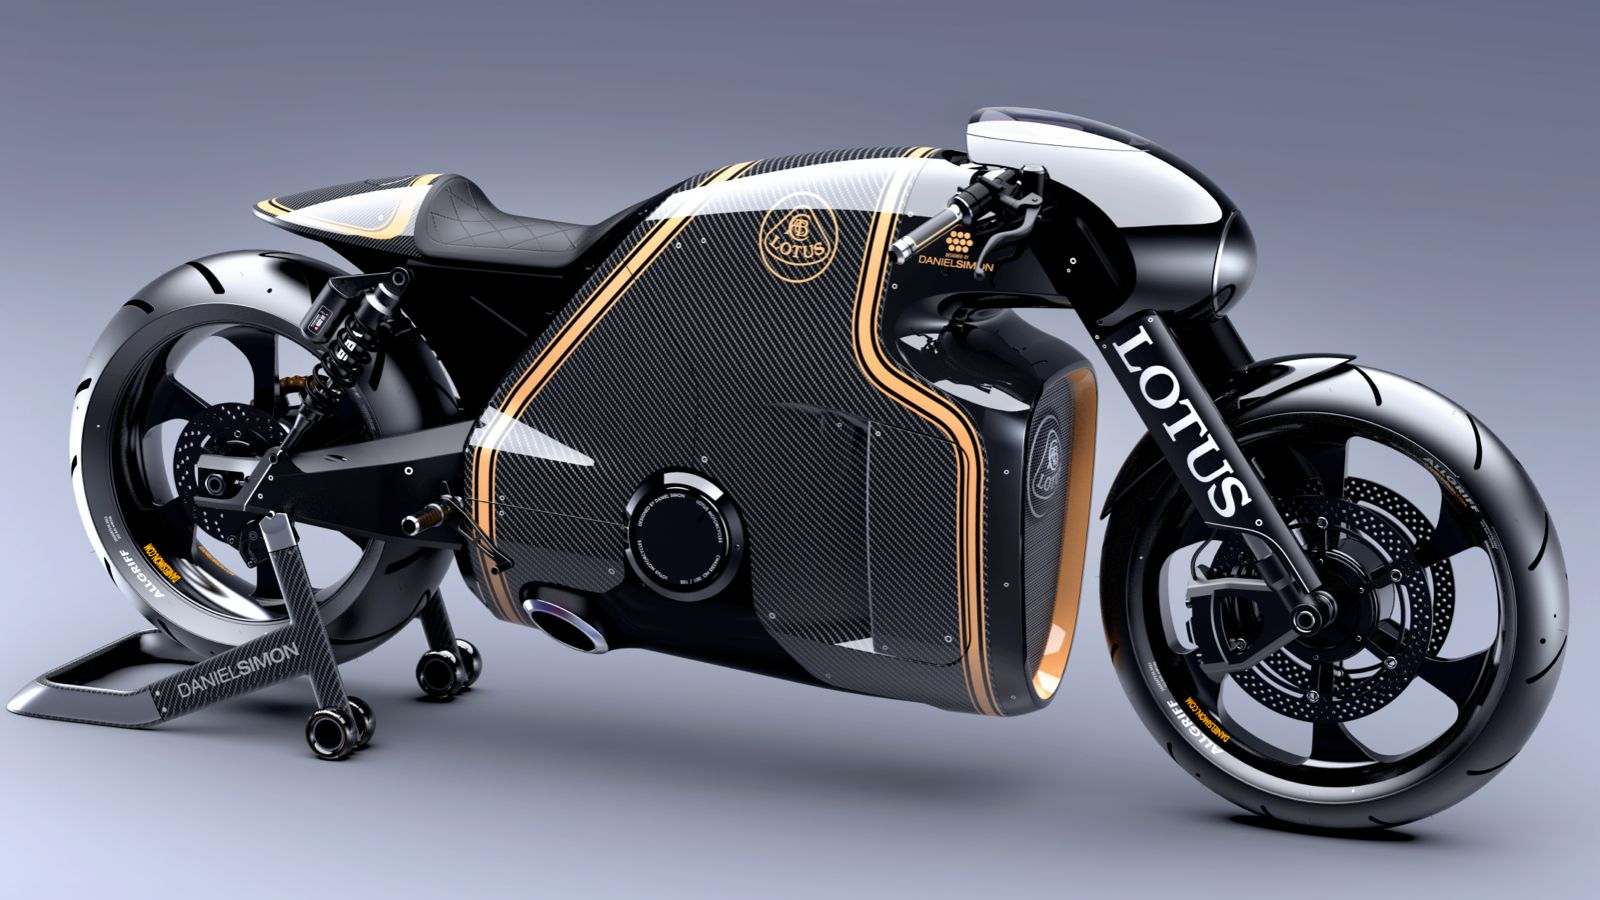 The Lotus C-01 Is A Stunner Superbike From The Man Behind Tron ...